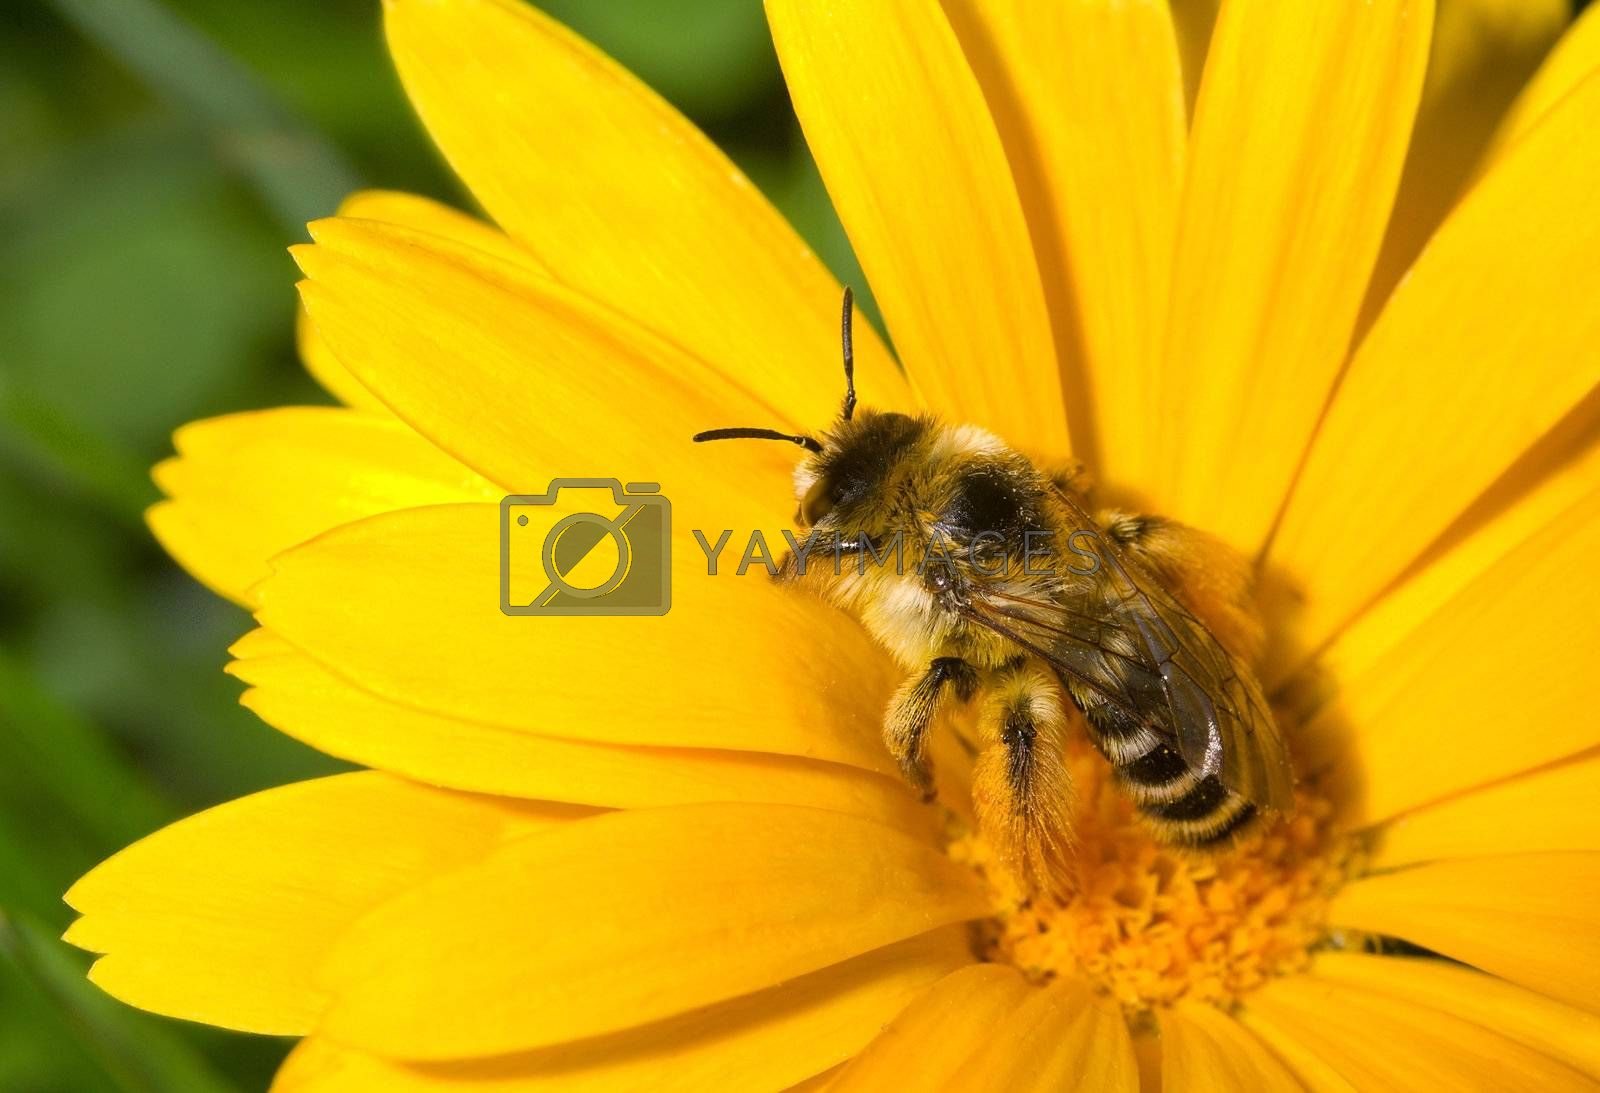 bumblebee collecting nectar on yellow flower